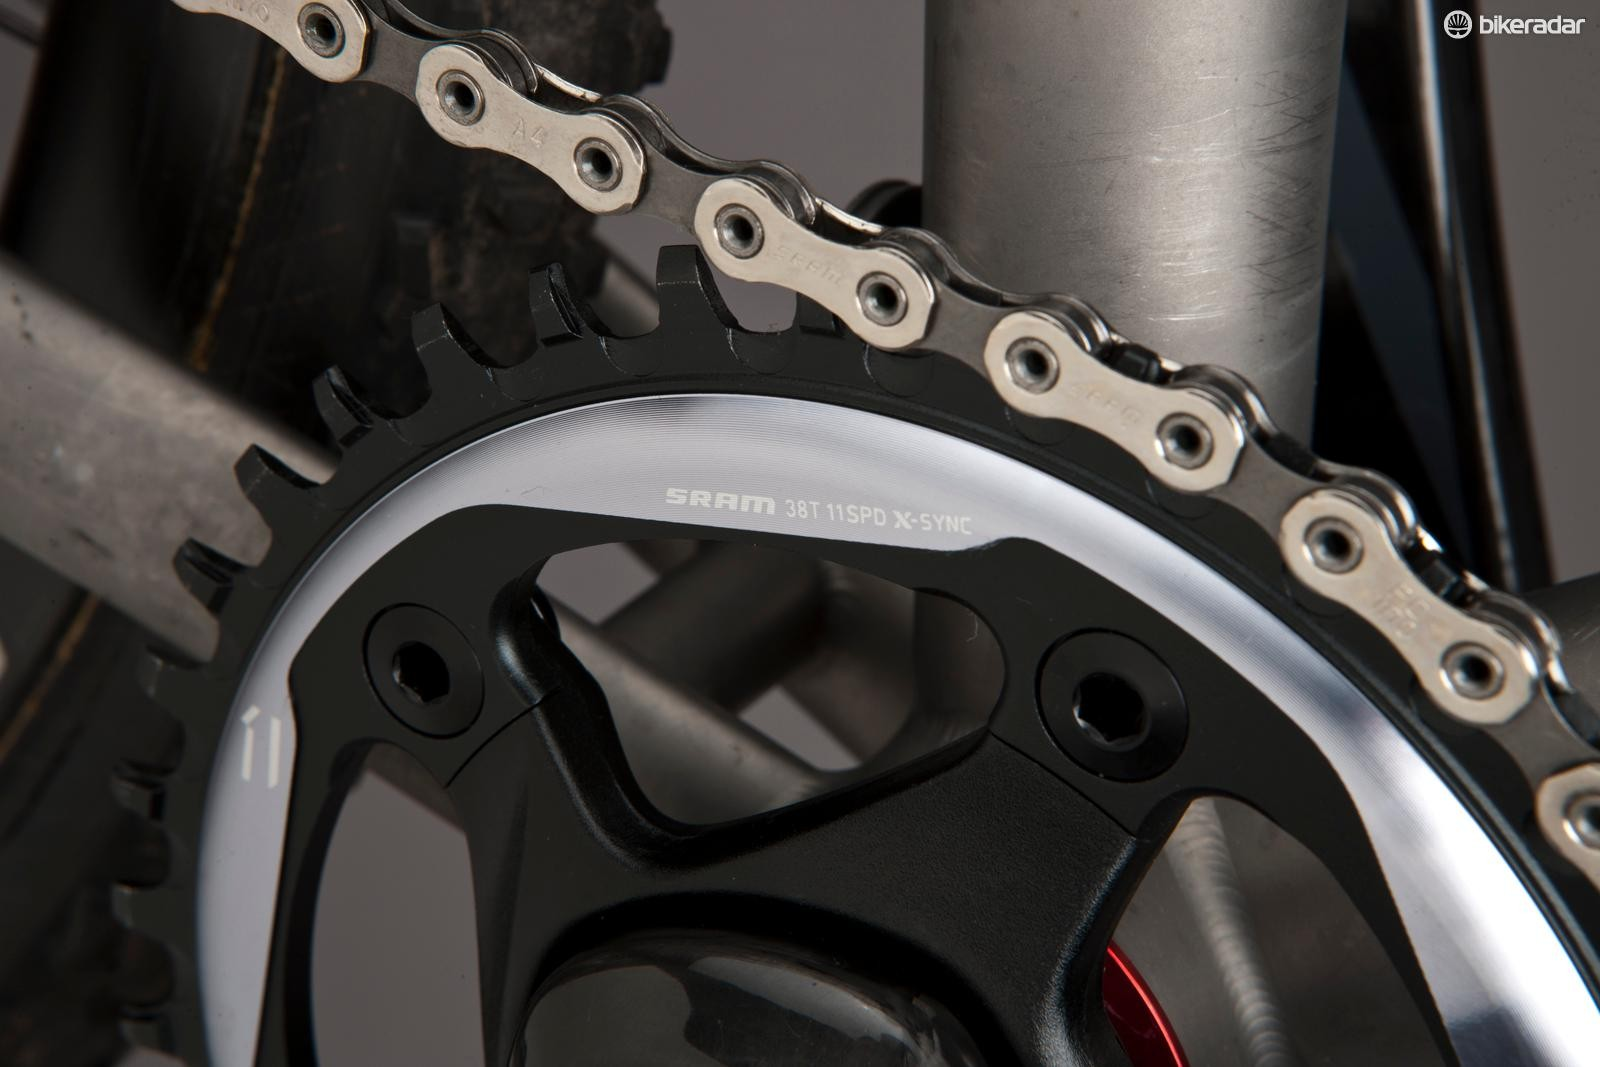 With teeth keyed to the inner and outer links in the chain, the X-Sync chain ring holds and guides the chain flawlessly and helps prevent chain dropping